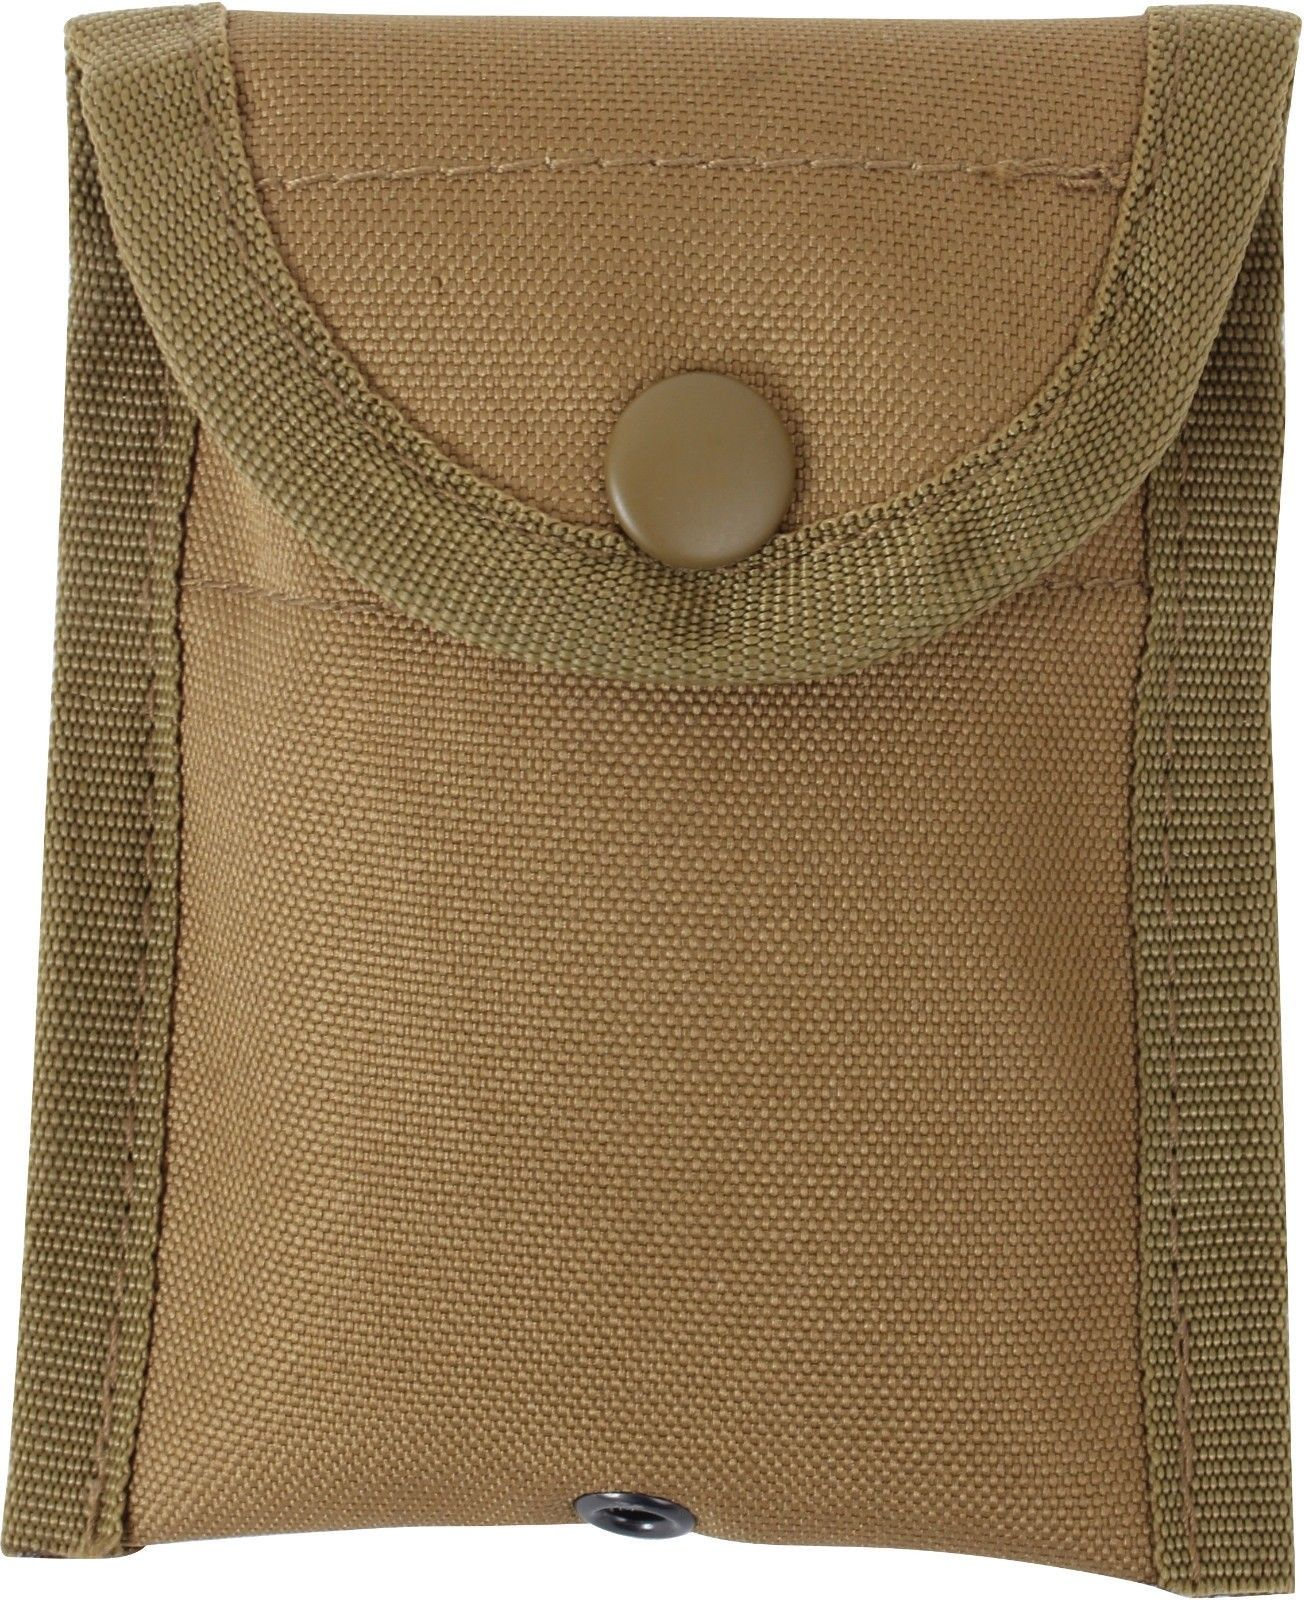 Coyote Brown MOLLE Compatible Compass Pouch